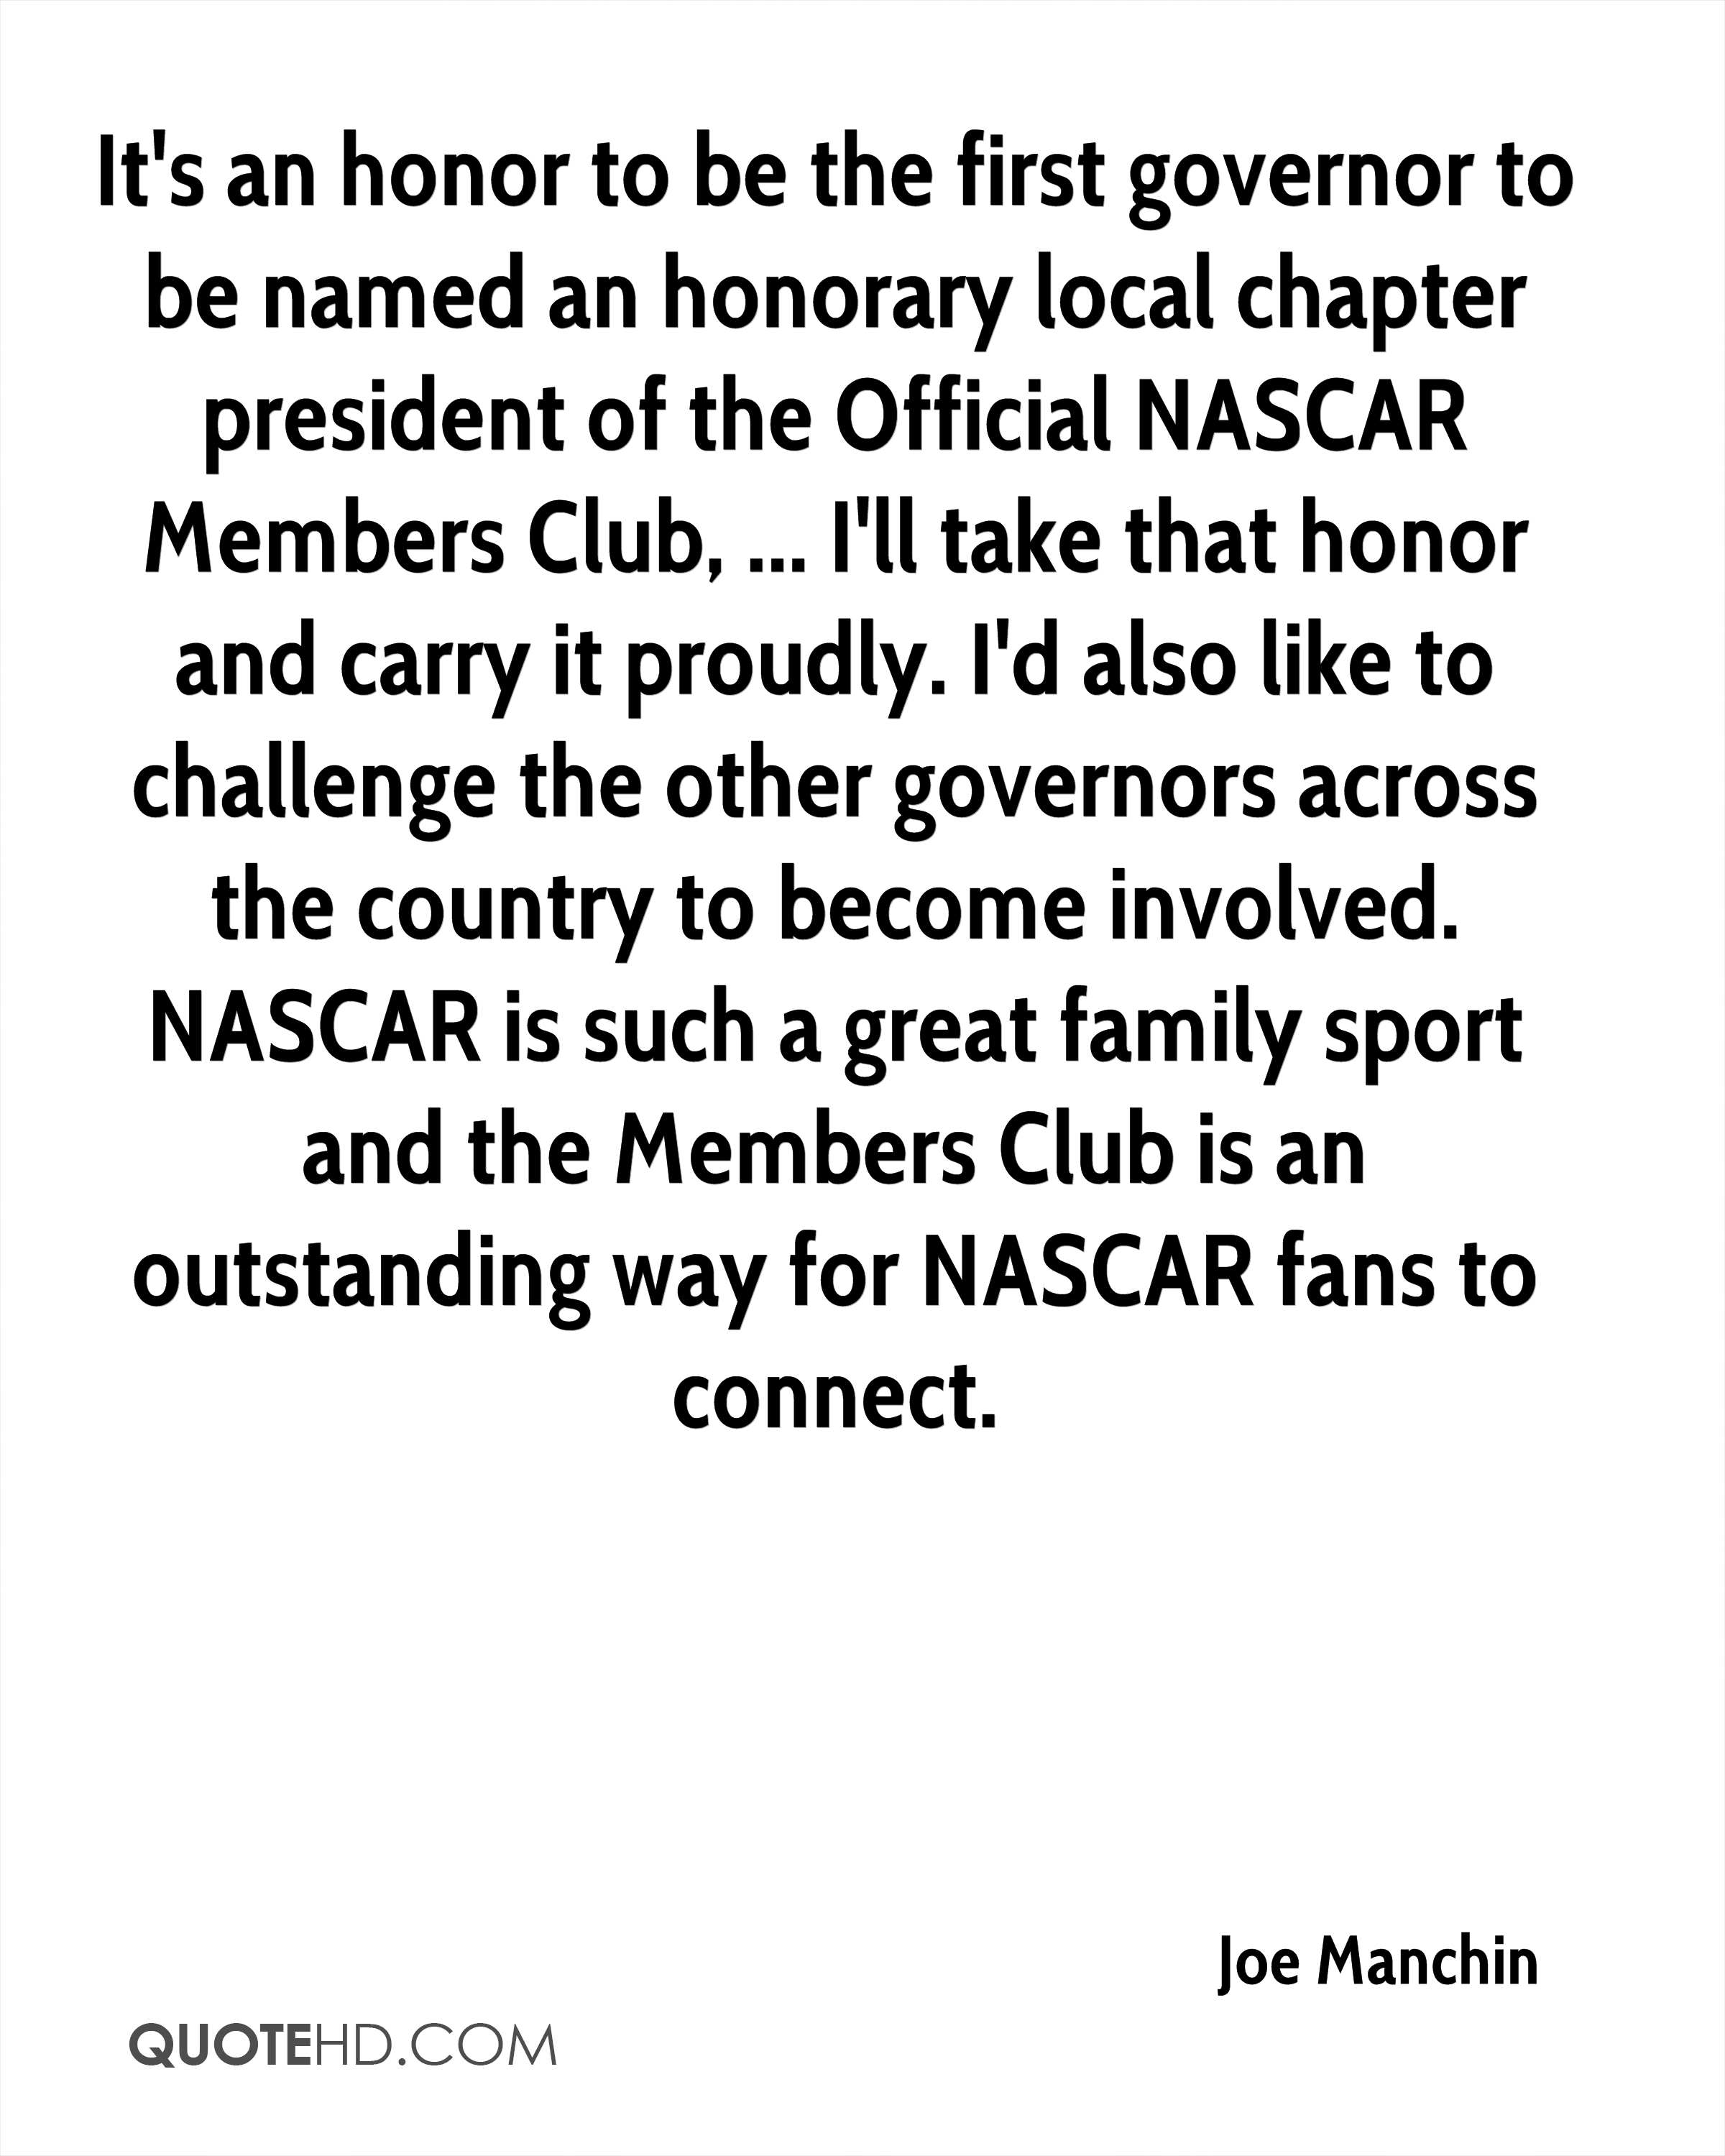 It's an honor to be the first governor to be named an honorary local chapter president of the Official NASCAR Members Club, ... I'll take that honor and carry it proudly. I'd also like to challenge the other governors across the country to become involved. NASCAR is such a great family sport and the Members Club is an outstanding way for NASCAR fans to connect.